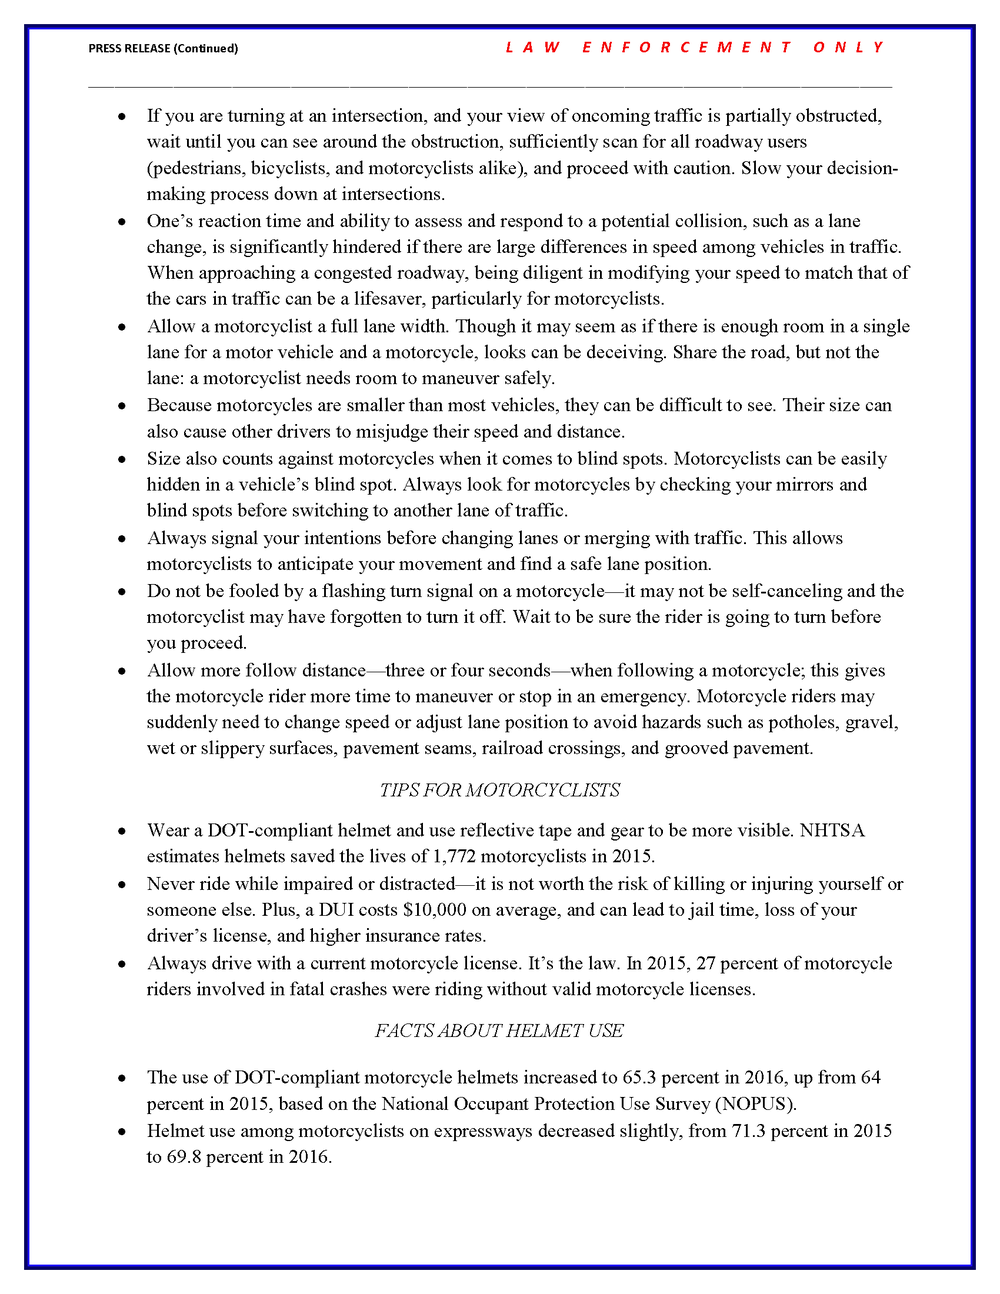 Motorcycle Safety Talking Points_Page_2.png